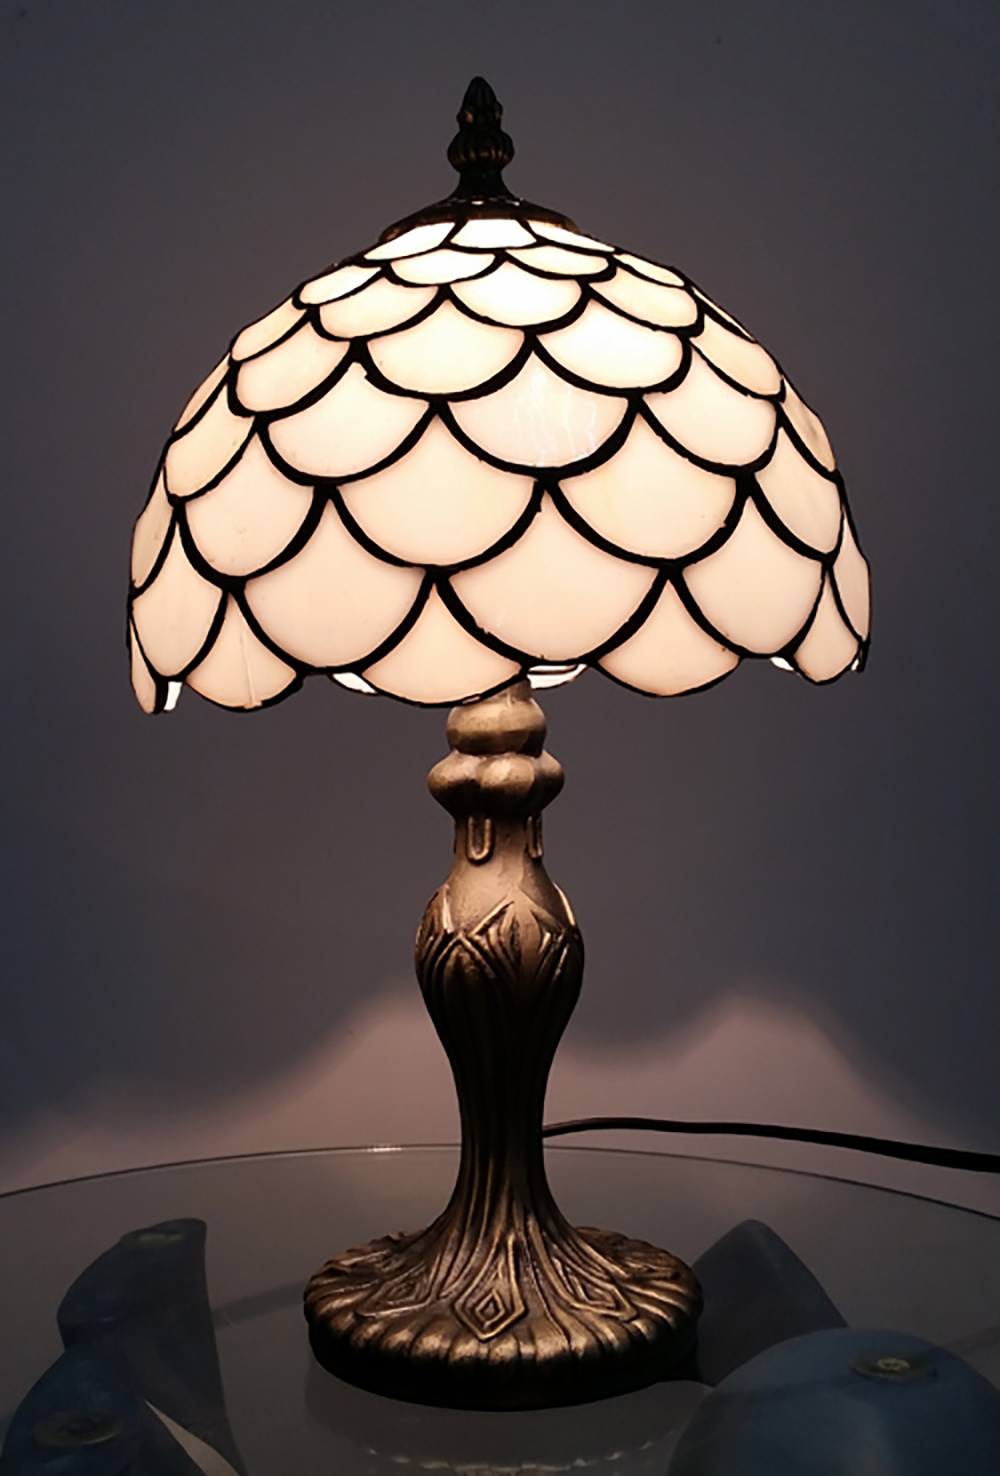 8 Inch Tiffany Antique Brass Lamp Modern Home Bedside Tables With Glass Shade Ebay